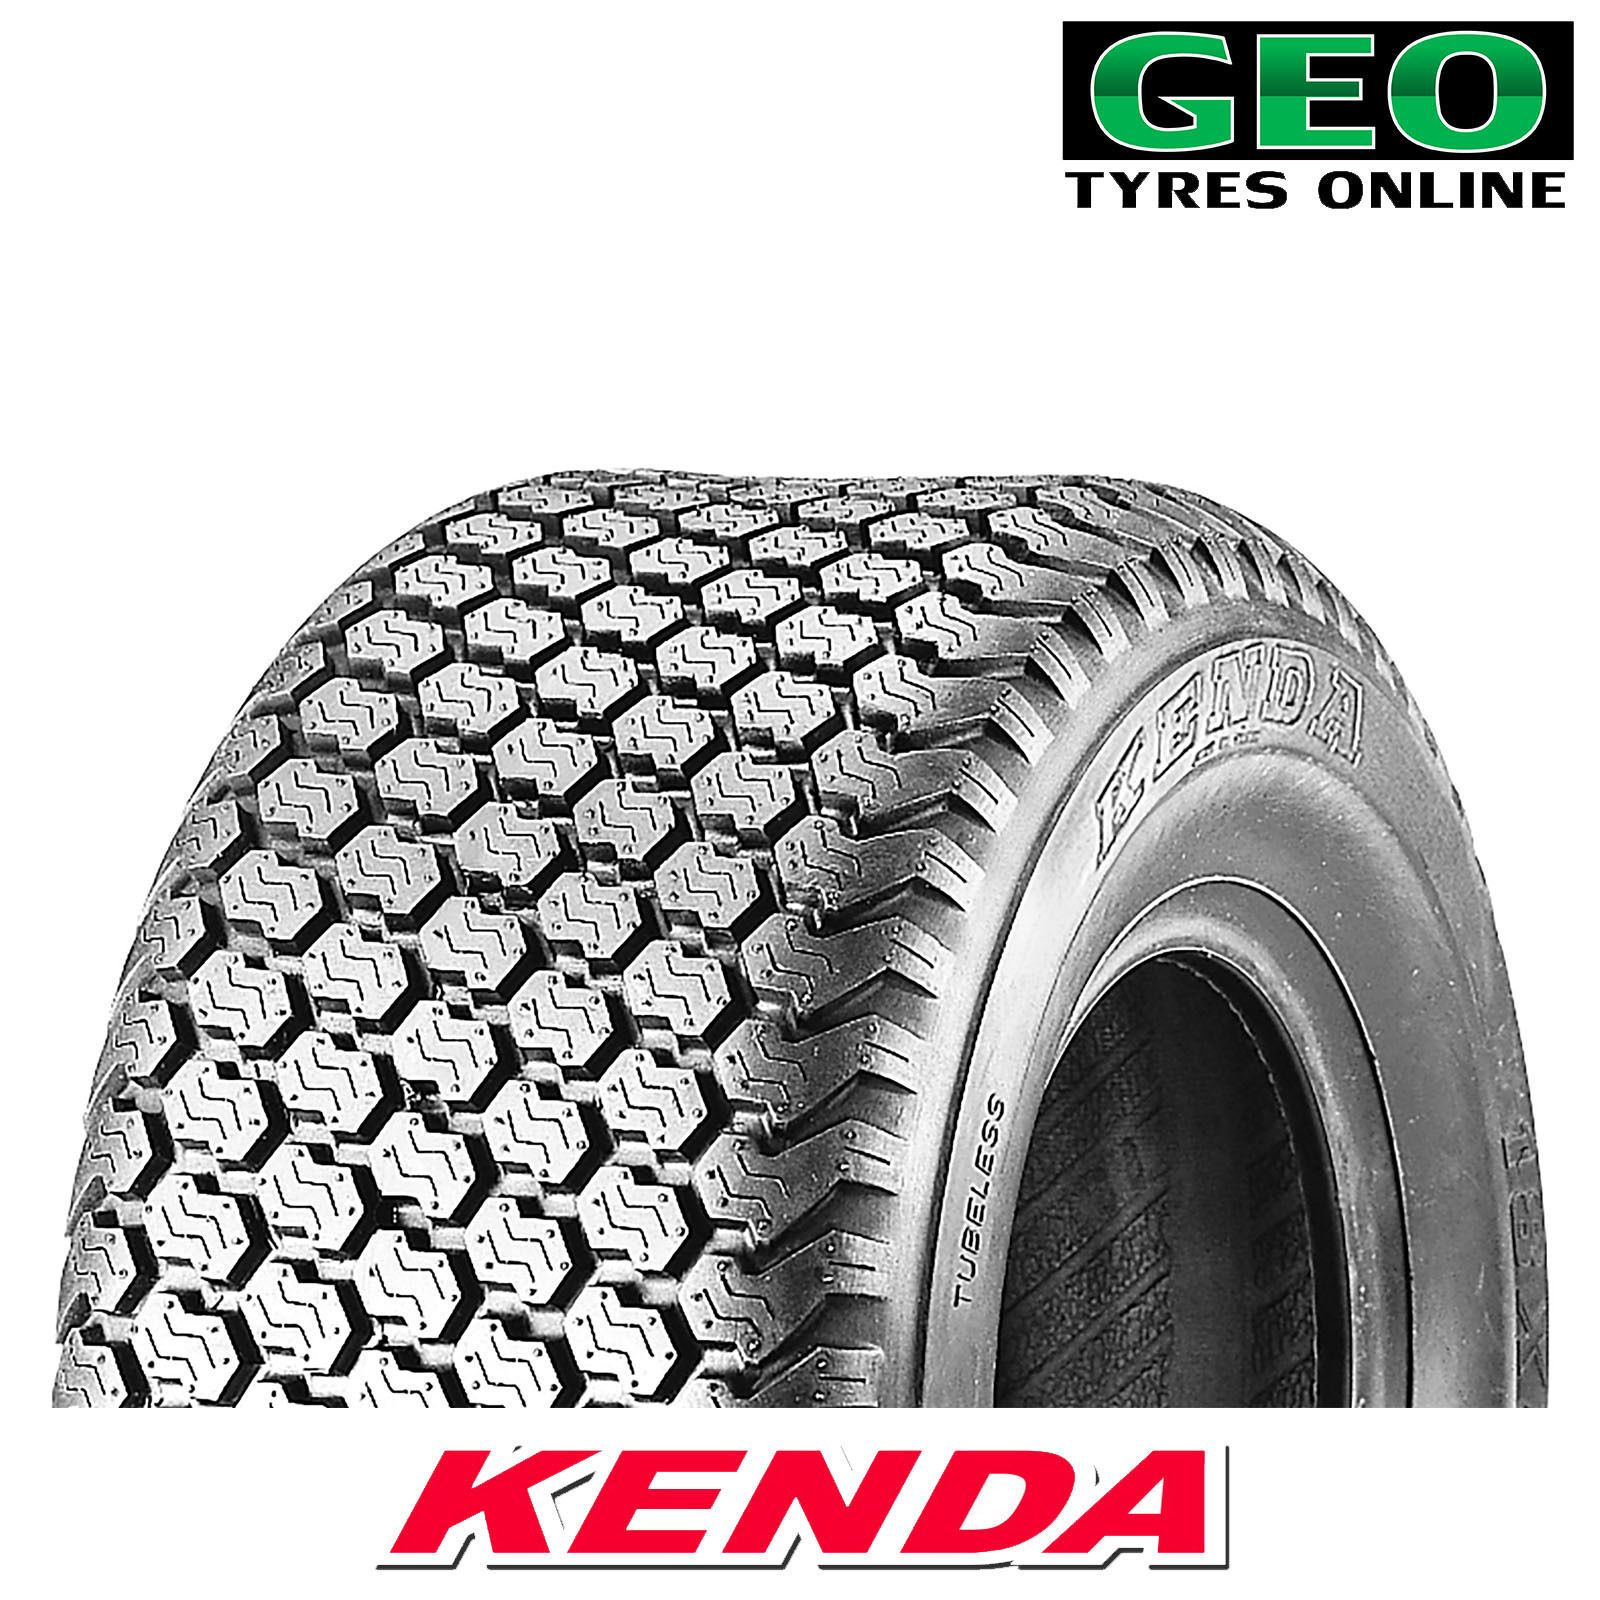 11x4 00 4 K500 4 Ply Kenda Super Turf With Images Tires For Sale Tire Motorcycle Tires